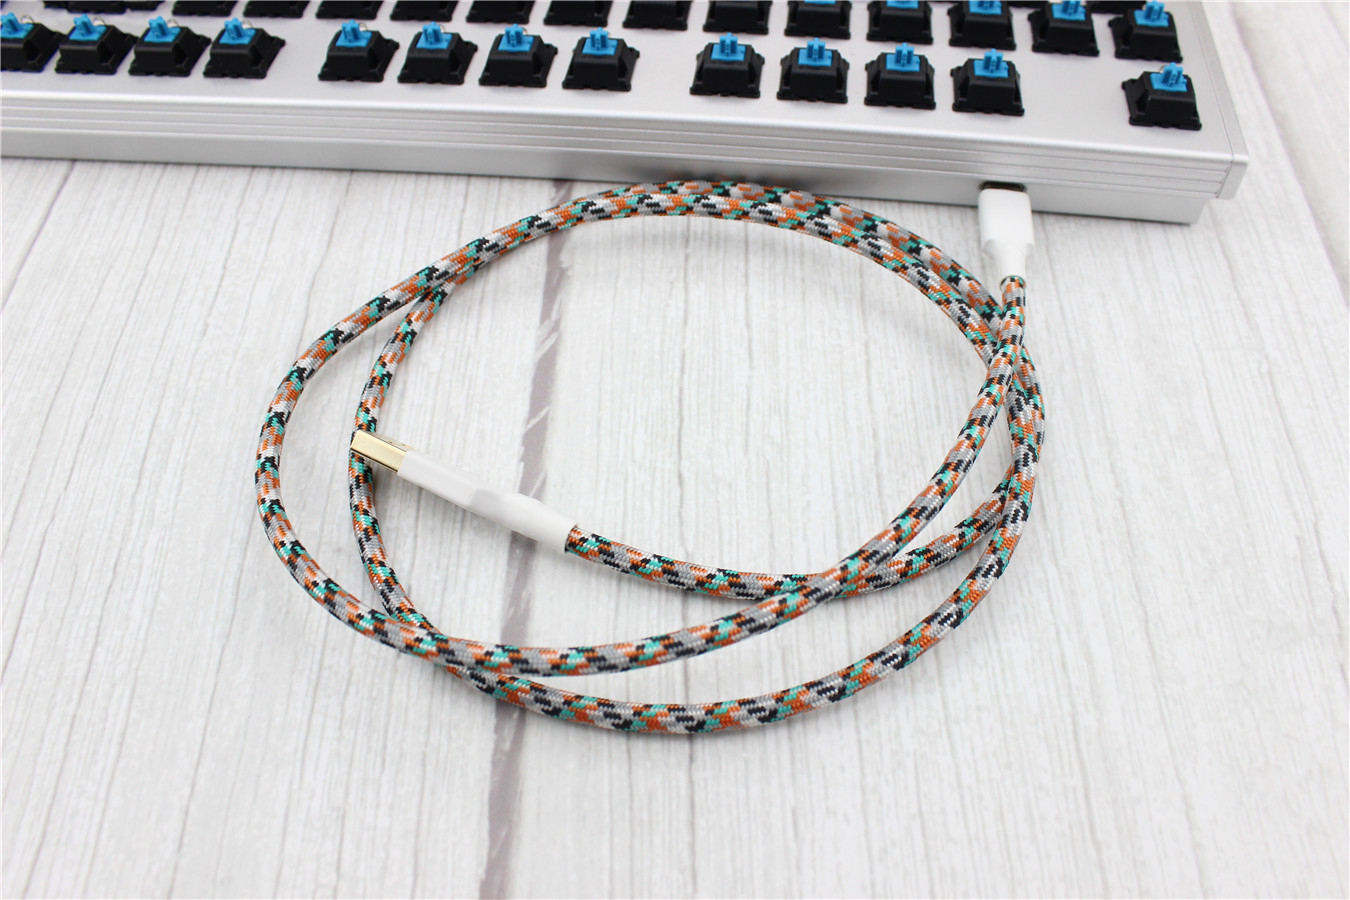 Cable Wire Mechanical Keyboard USB Cable Type-c USB Ducky Custom Sleeved Cord   eBay